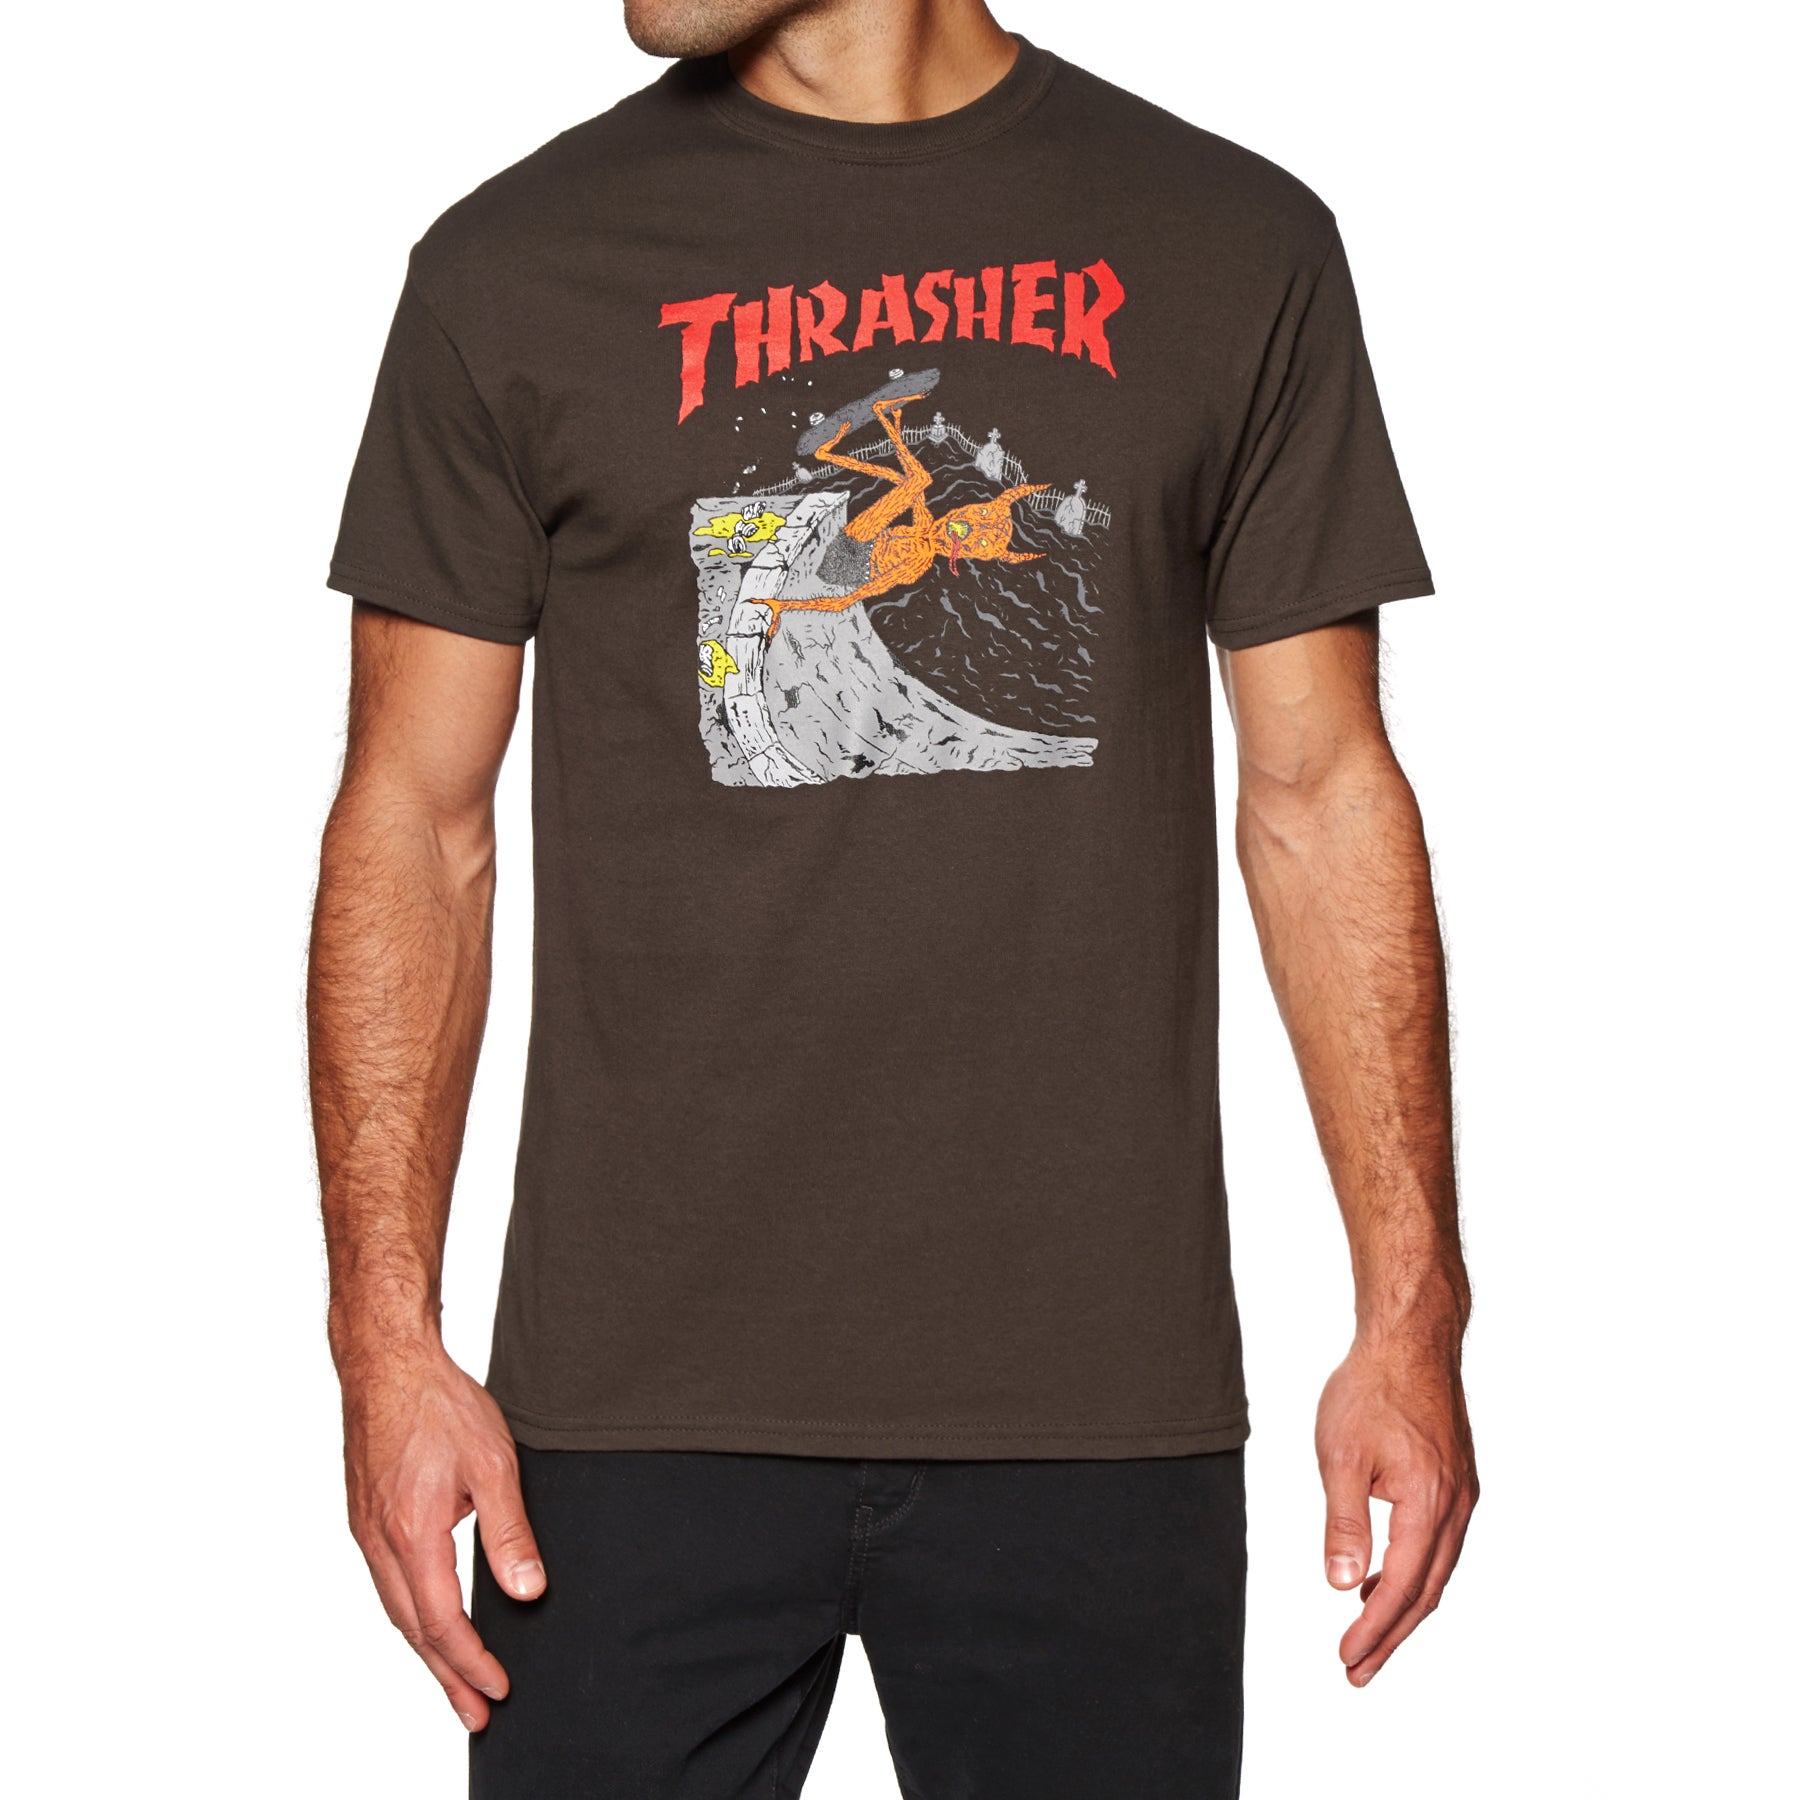 Thrasher Neckface Invert Short Sleeve T-Shirt - Brown